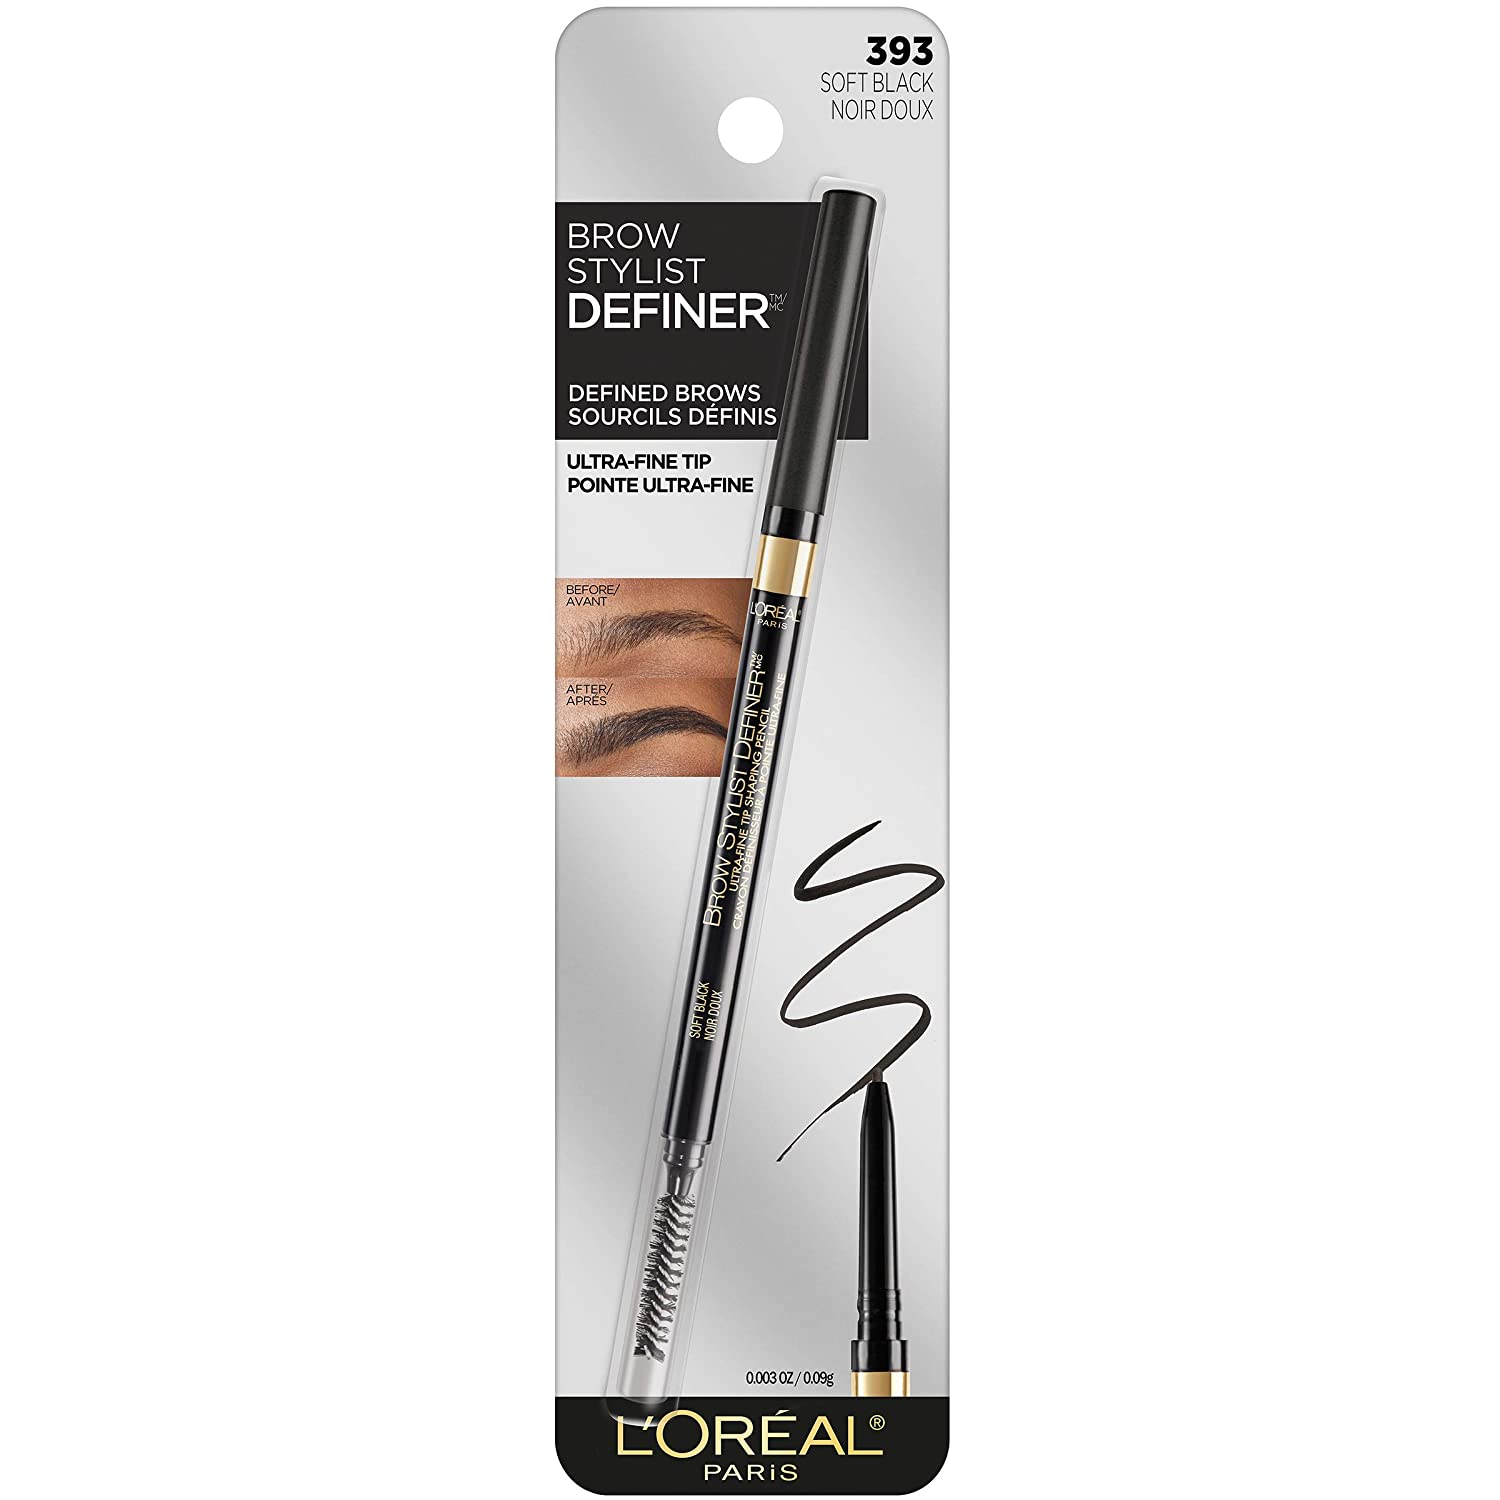 L'Oreal Paris Makeup Brow Definer Waterproof Eyebrow Pencil, Ultra-Fine Mechanical Pencil, Draws Tiny Brow Hairs & Fills in Sparse Areas & Gaps, Soft Black, 0.003 Ounce (Pack of 1)